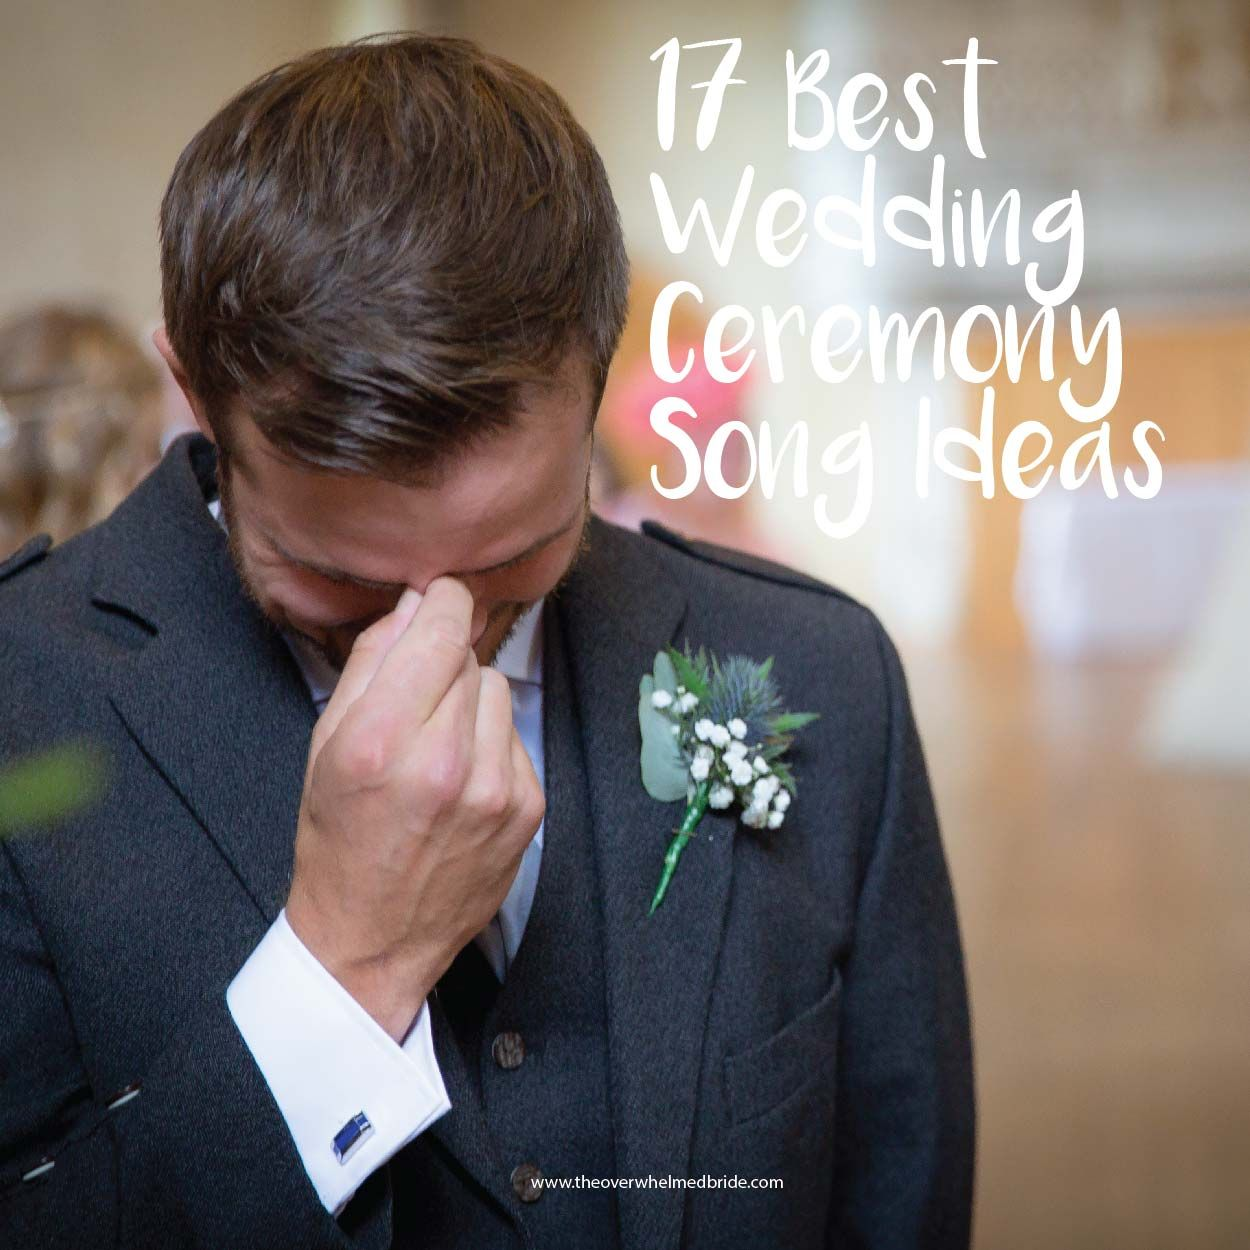 17 Best Wedding Ceremony Song Ideas